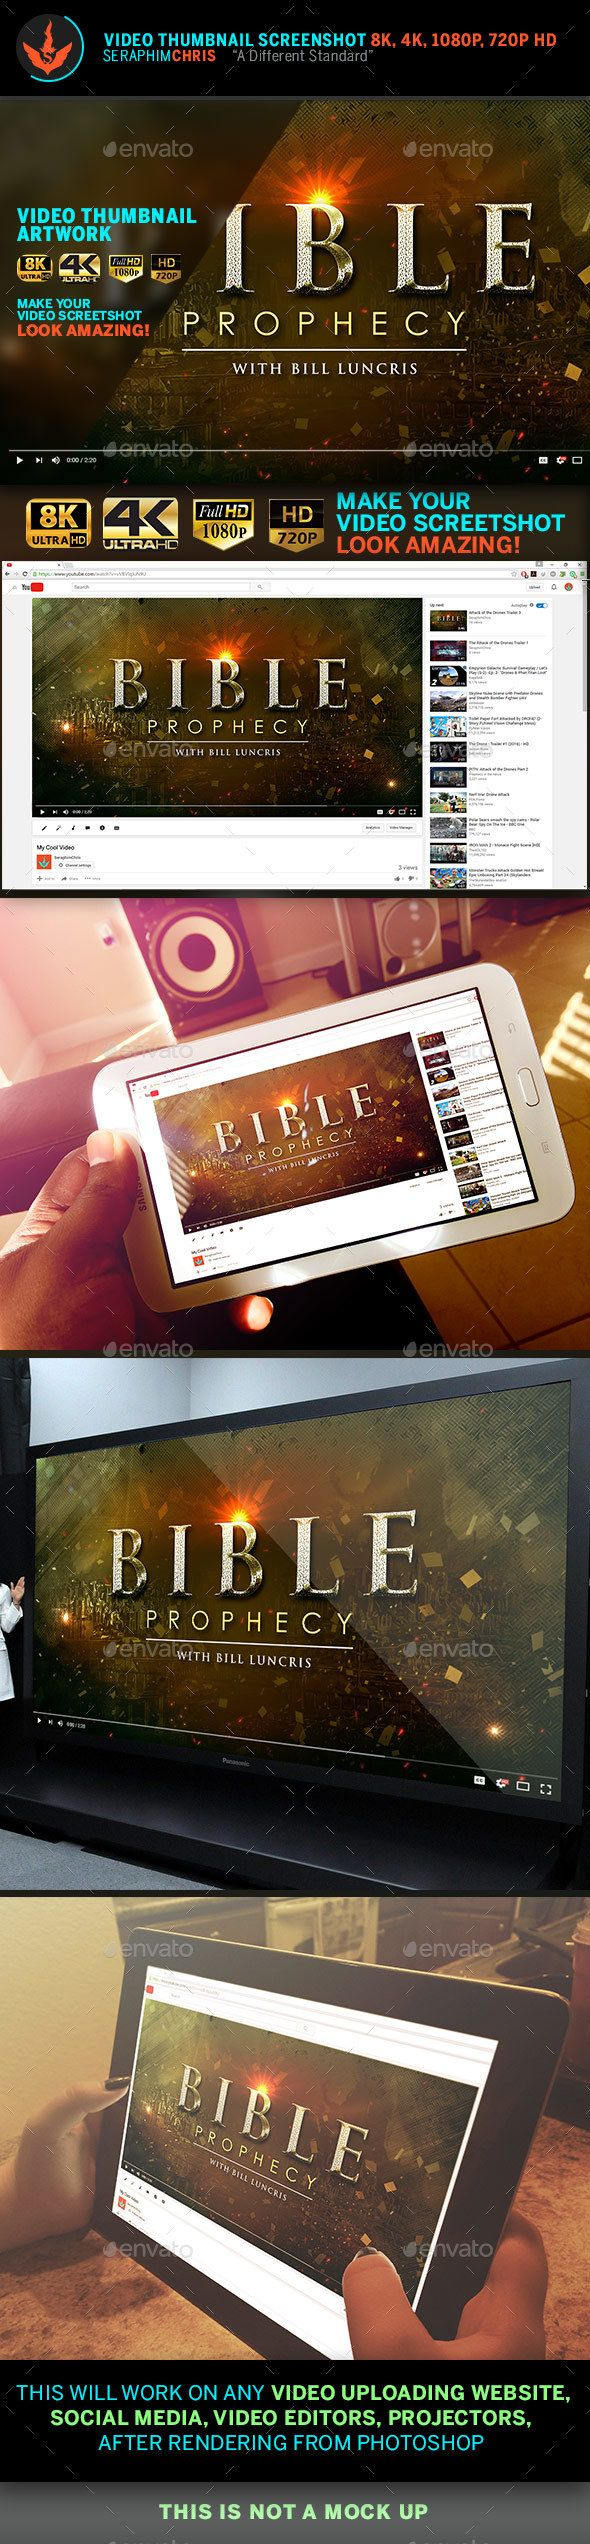 Bible Prophecy YouTube Video Thumbnail Screenshot Template ...